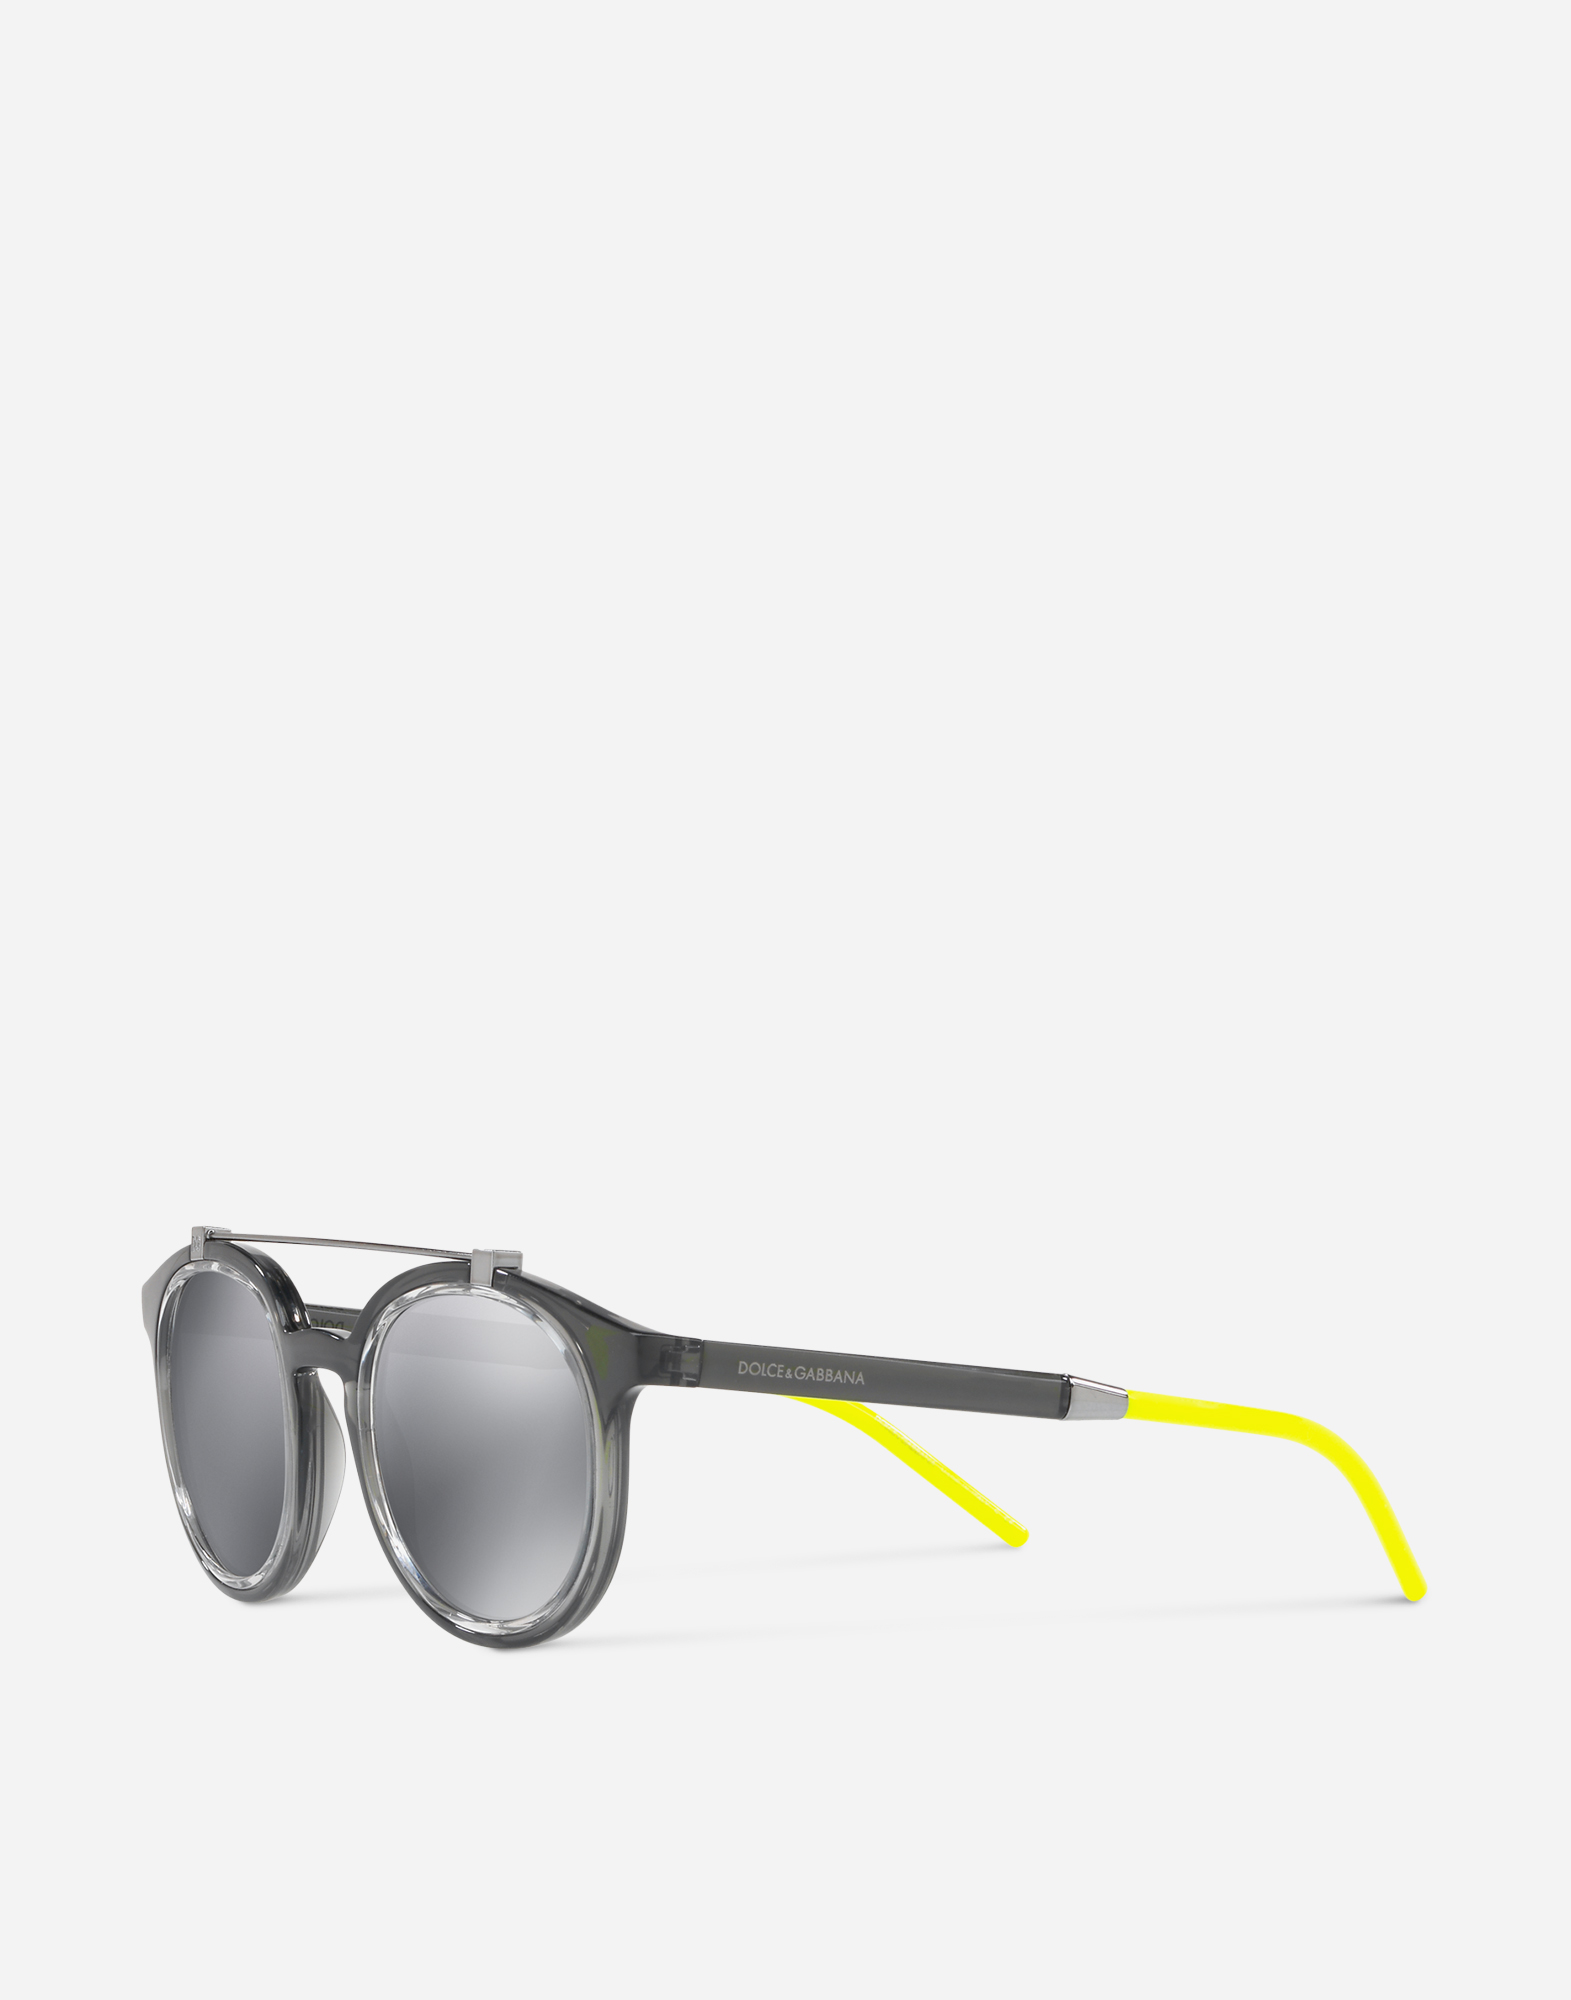 ROUND SUNGLASSES IN NYLON FIBER WITH DOUBLE BRIDGE